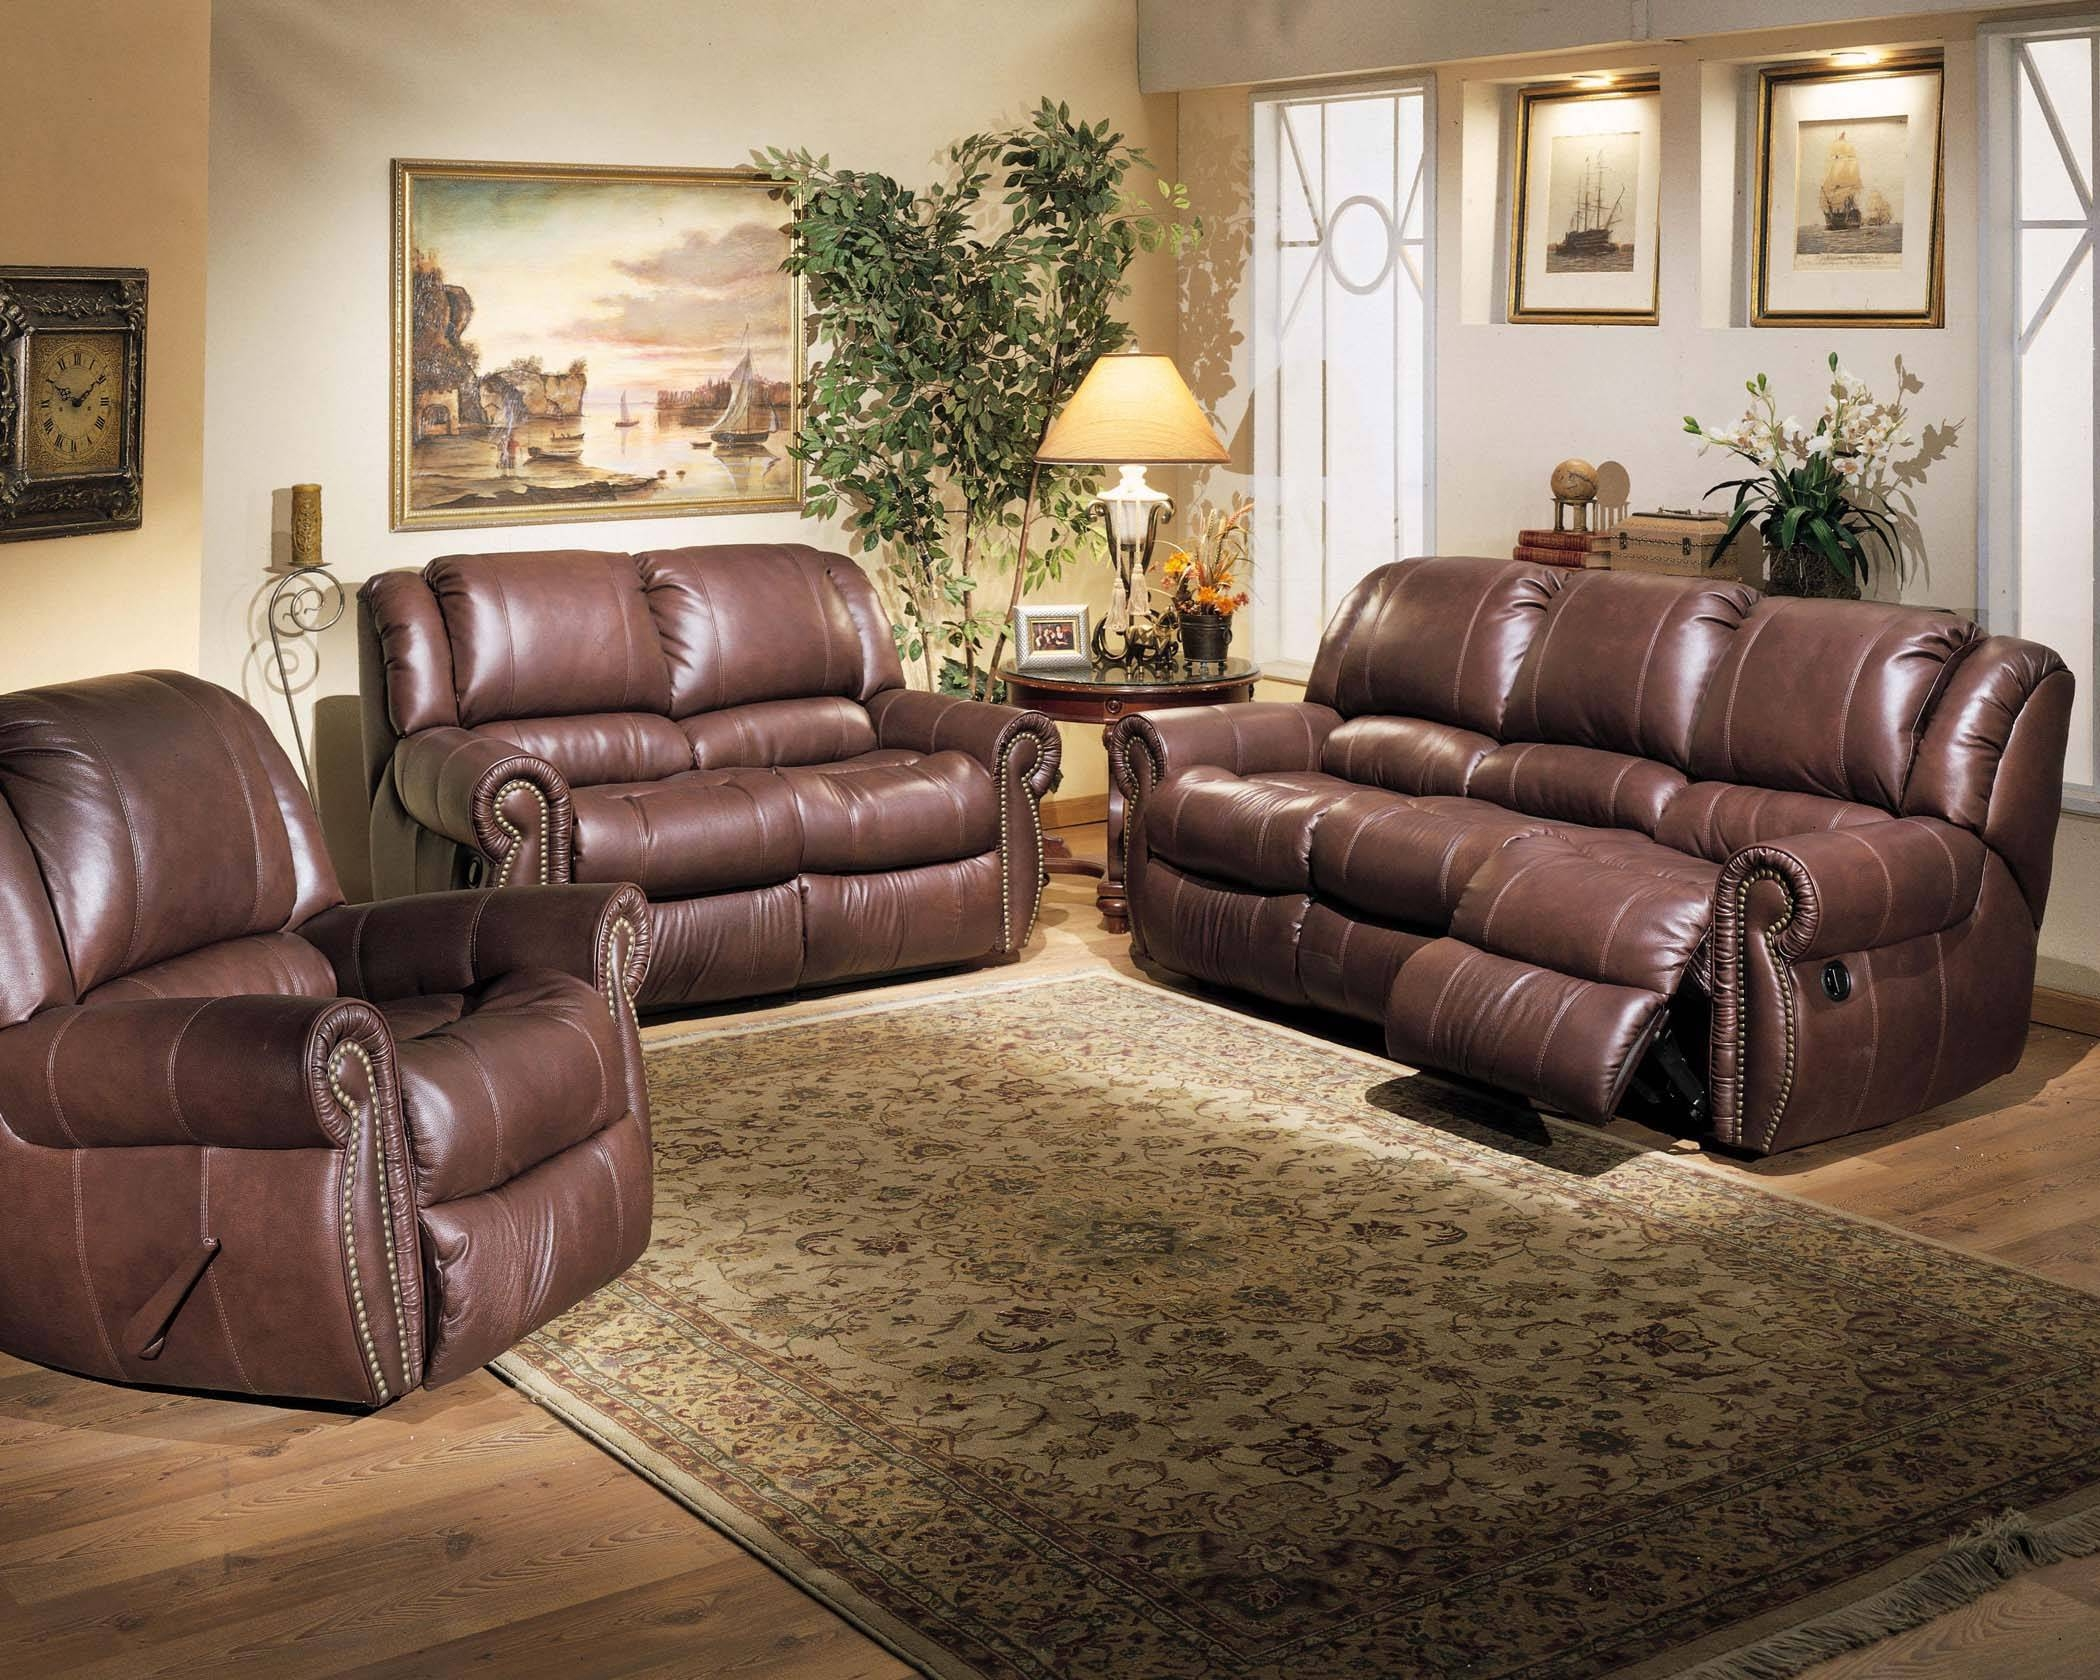 30 Best Collection of Traditional Leather Couch